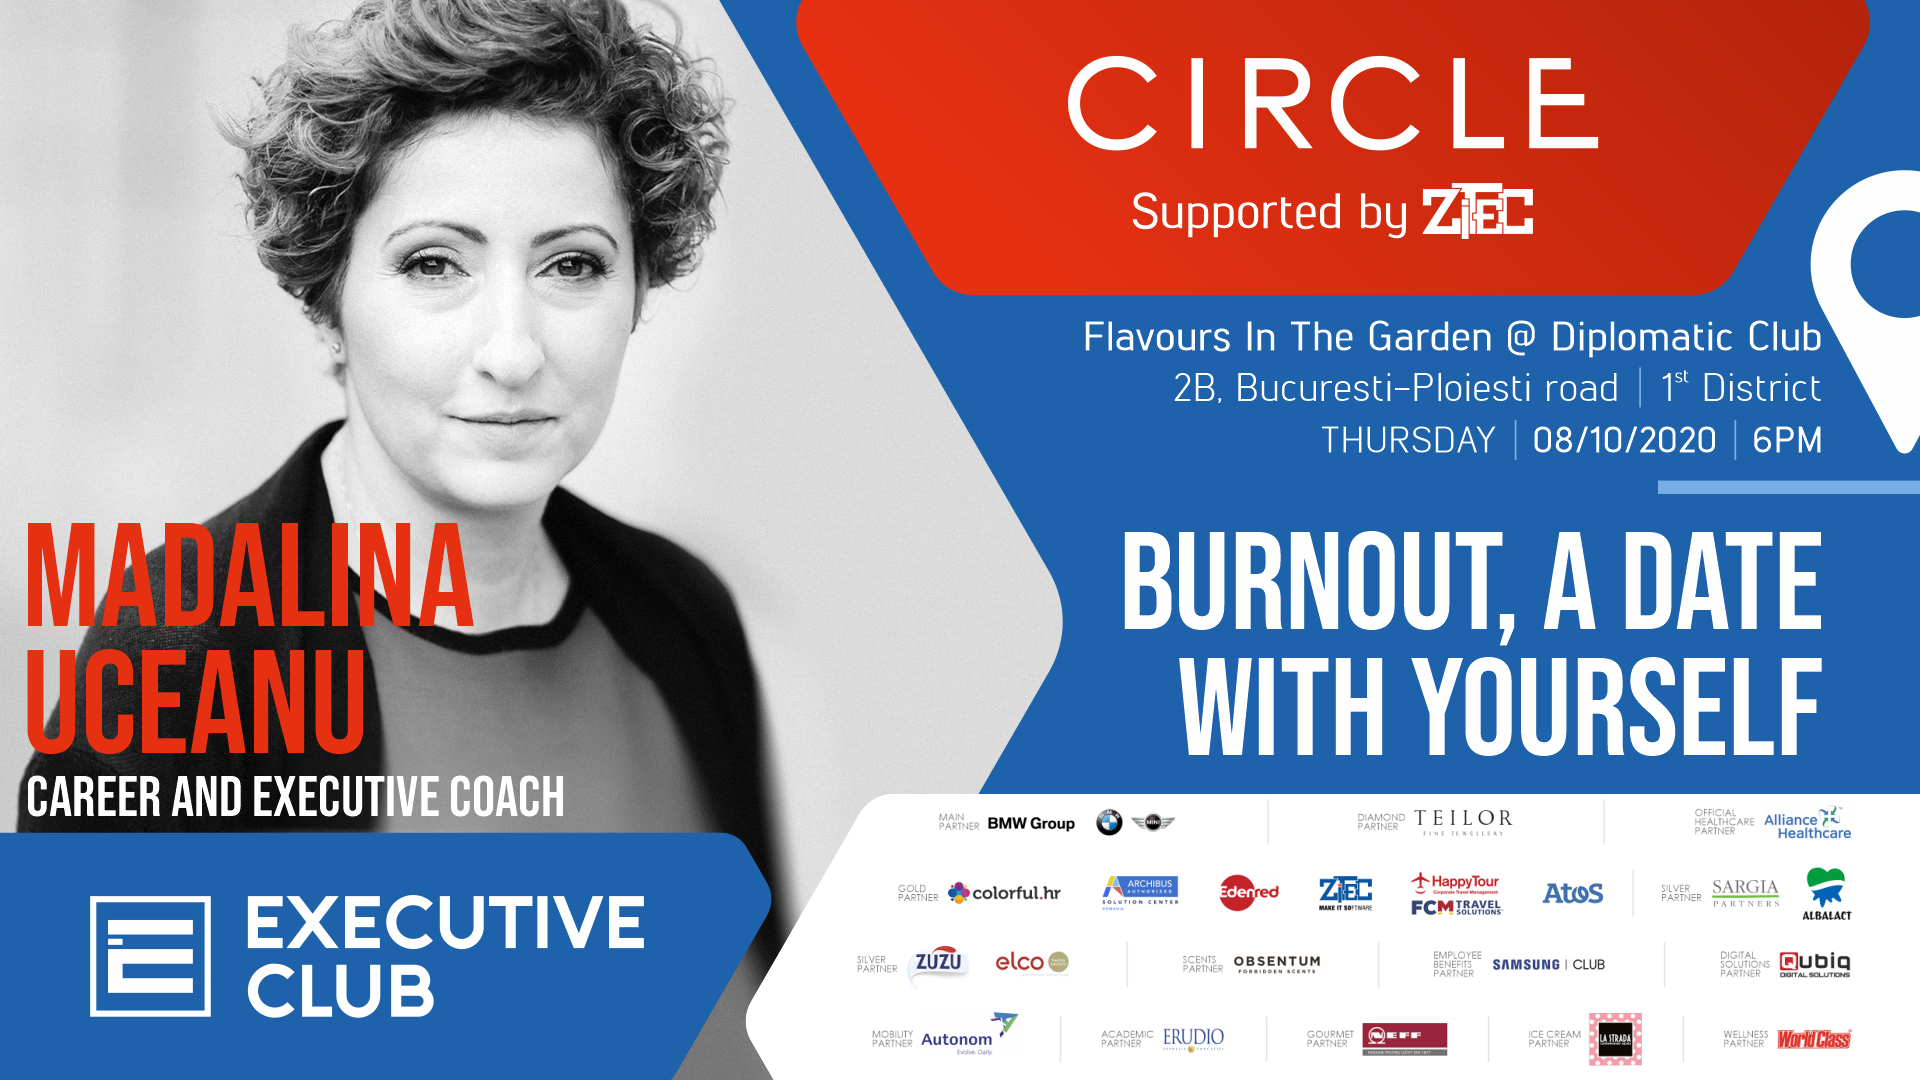 Executive Club Circle: Burnout, a date with yourself